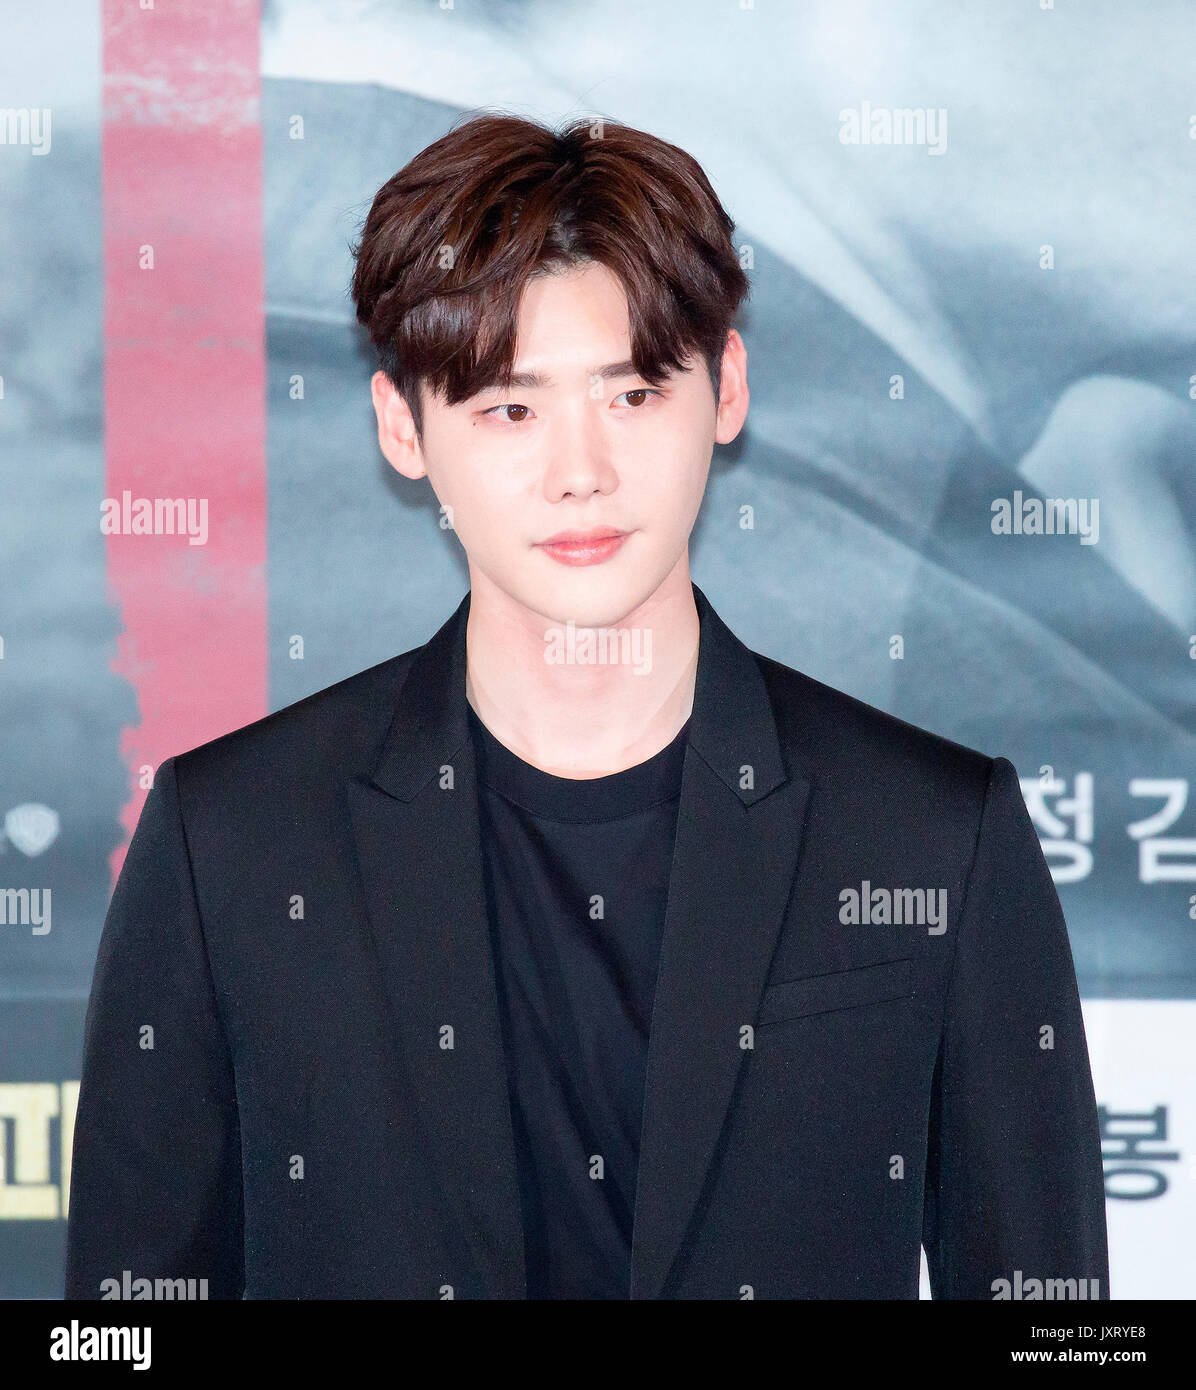 Lee Jong-suk, Aug 16, 2017 : South Korean actor Lee Jong-suk